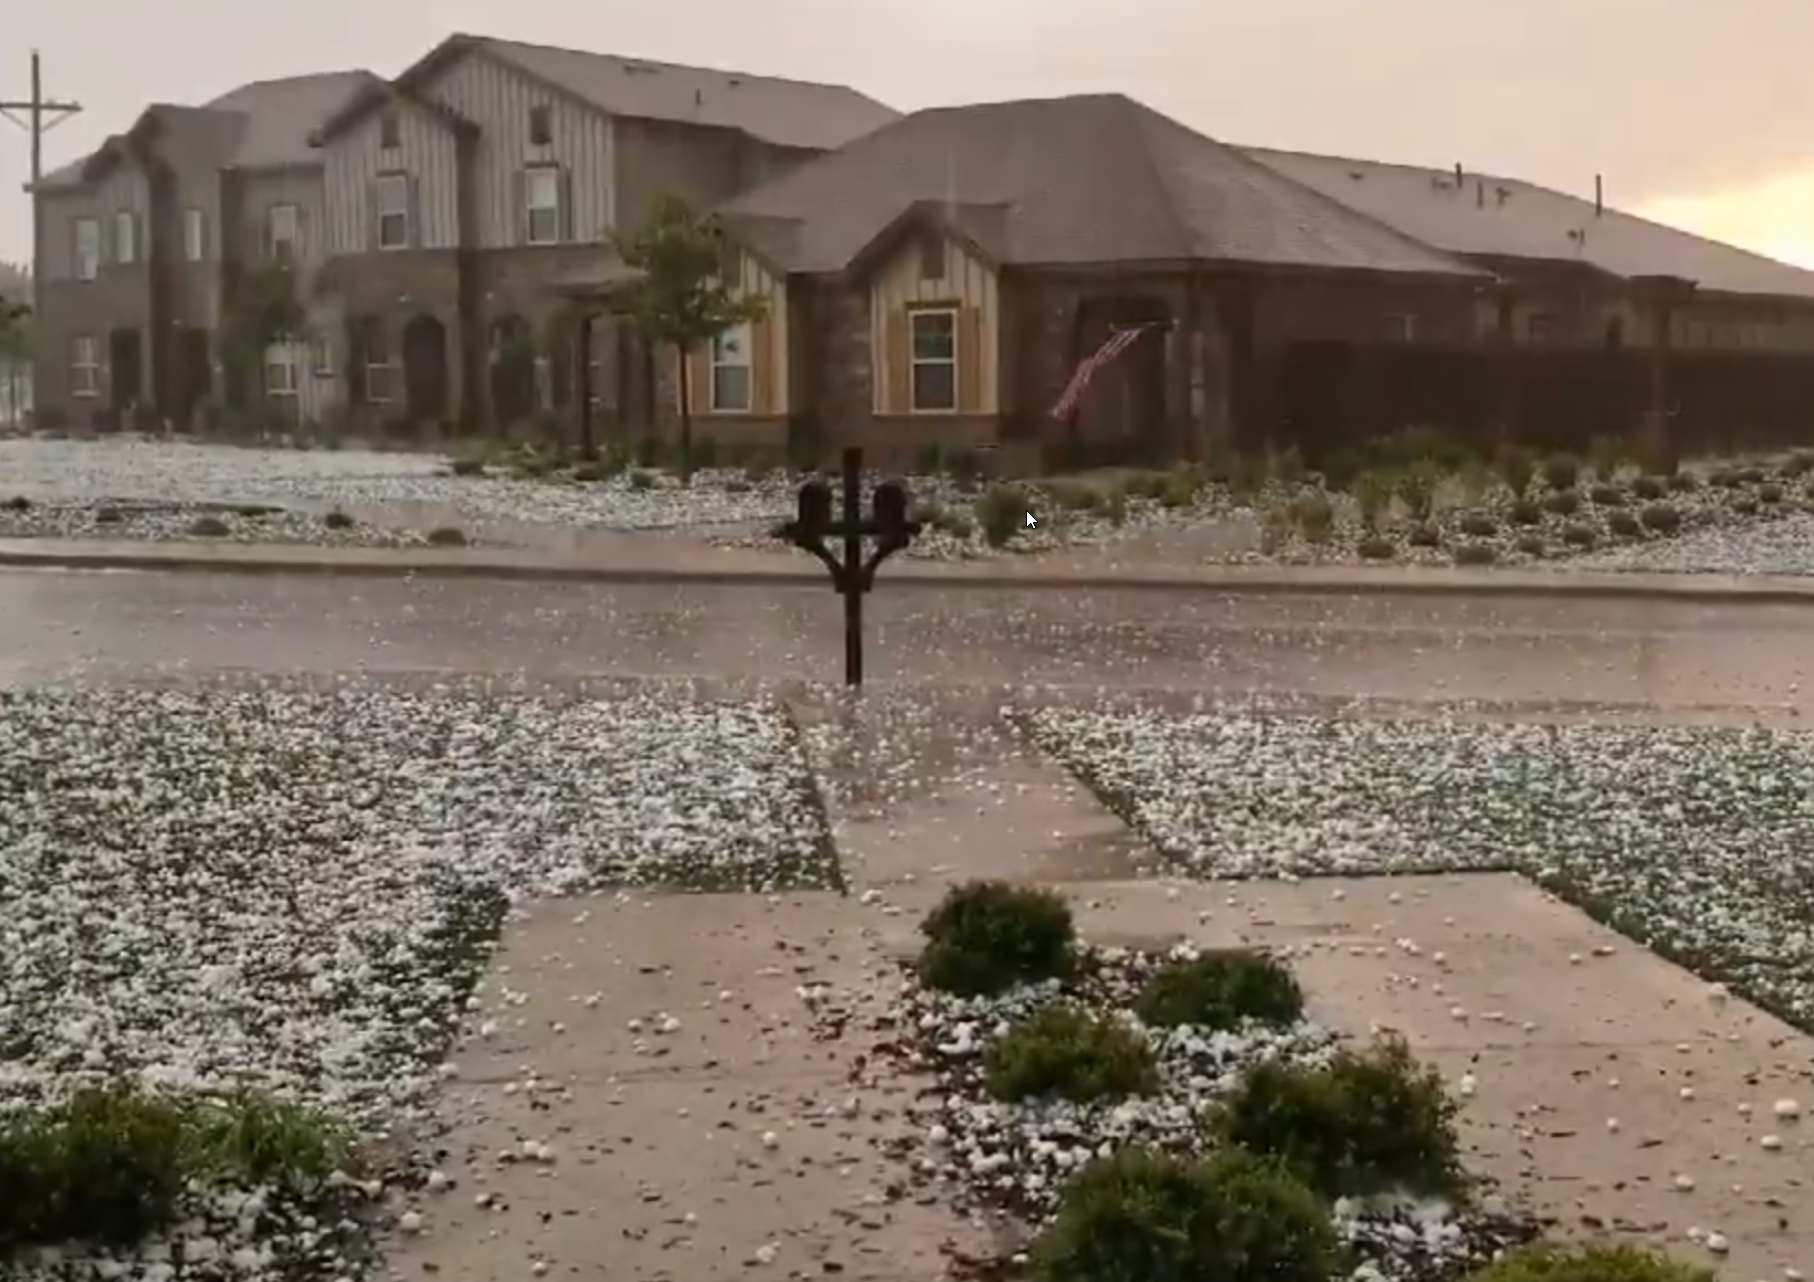 Image of hail in southwest Lubbock captured on 19 May 2018. The picture is courtesy of Emma Weston.